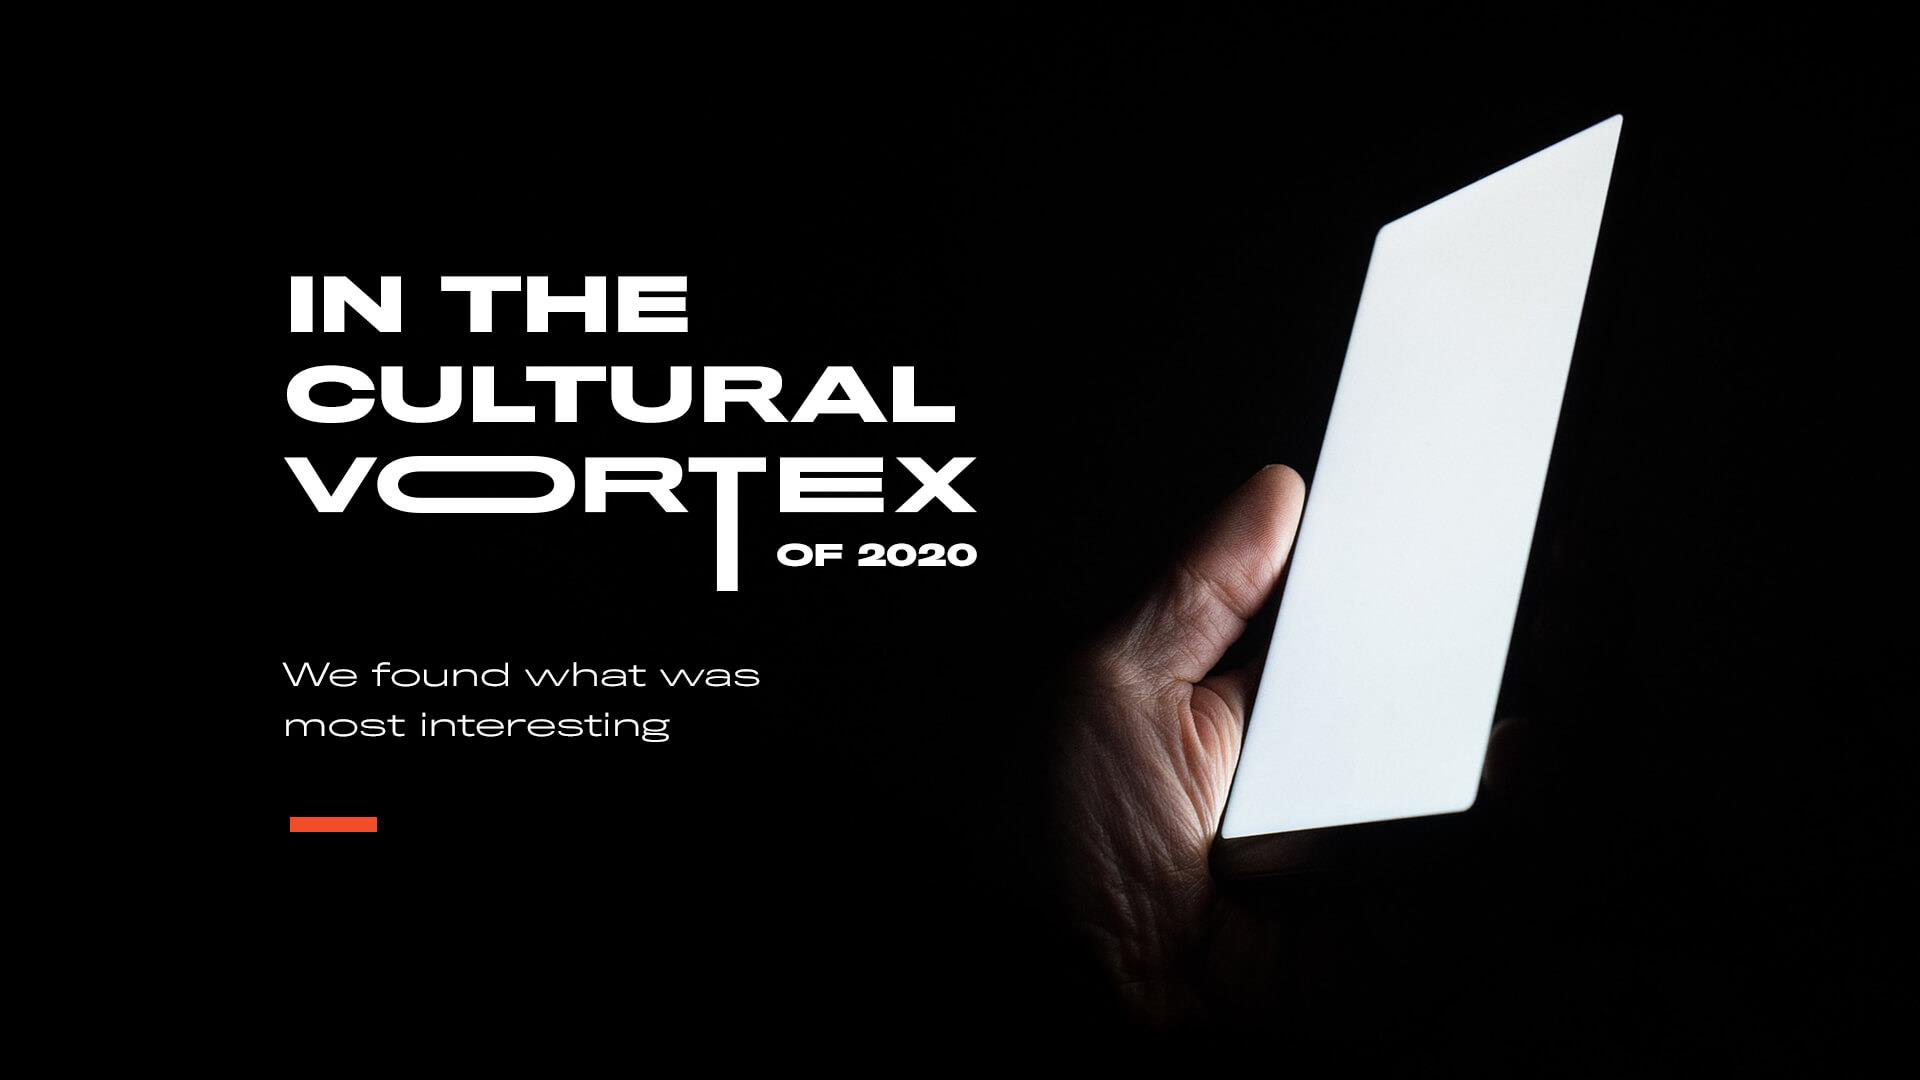 The Cultural Vortex of 2020